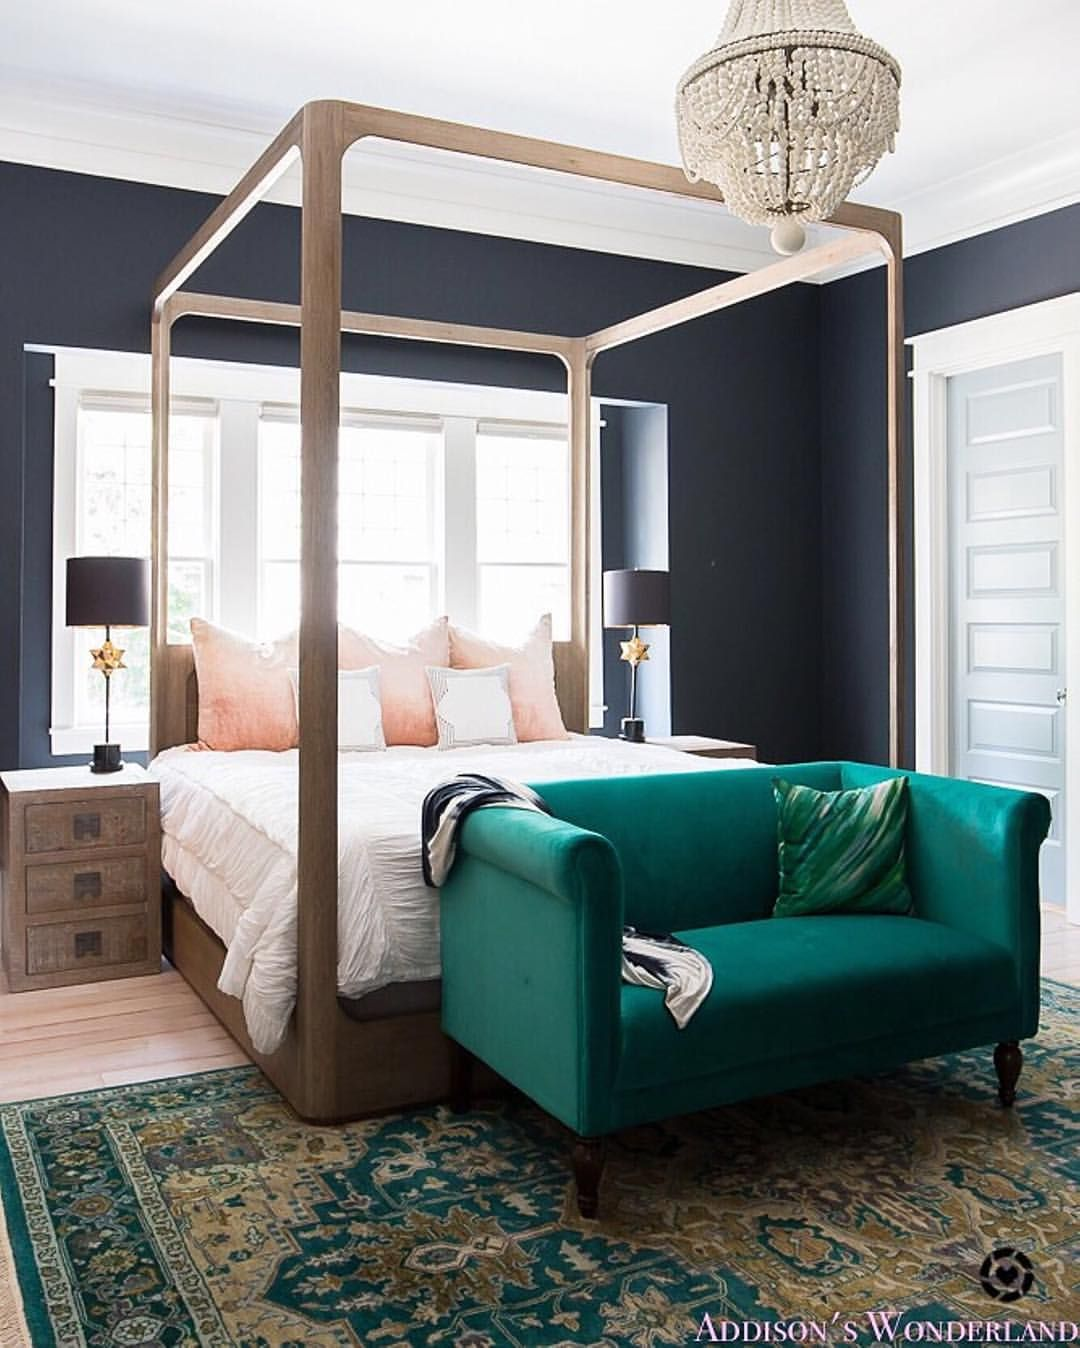 Bedroom Design Apps 7238 Likes 36 Comments  #ltkhome Liketoknowithome On